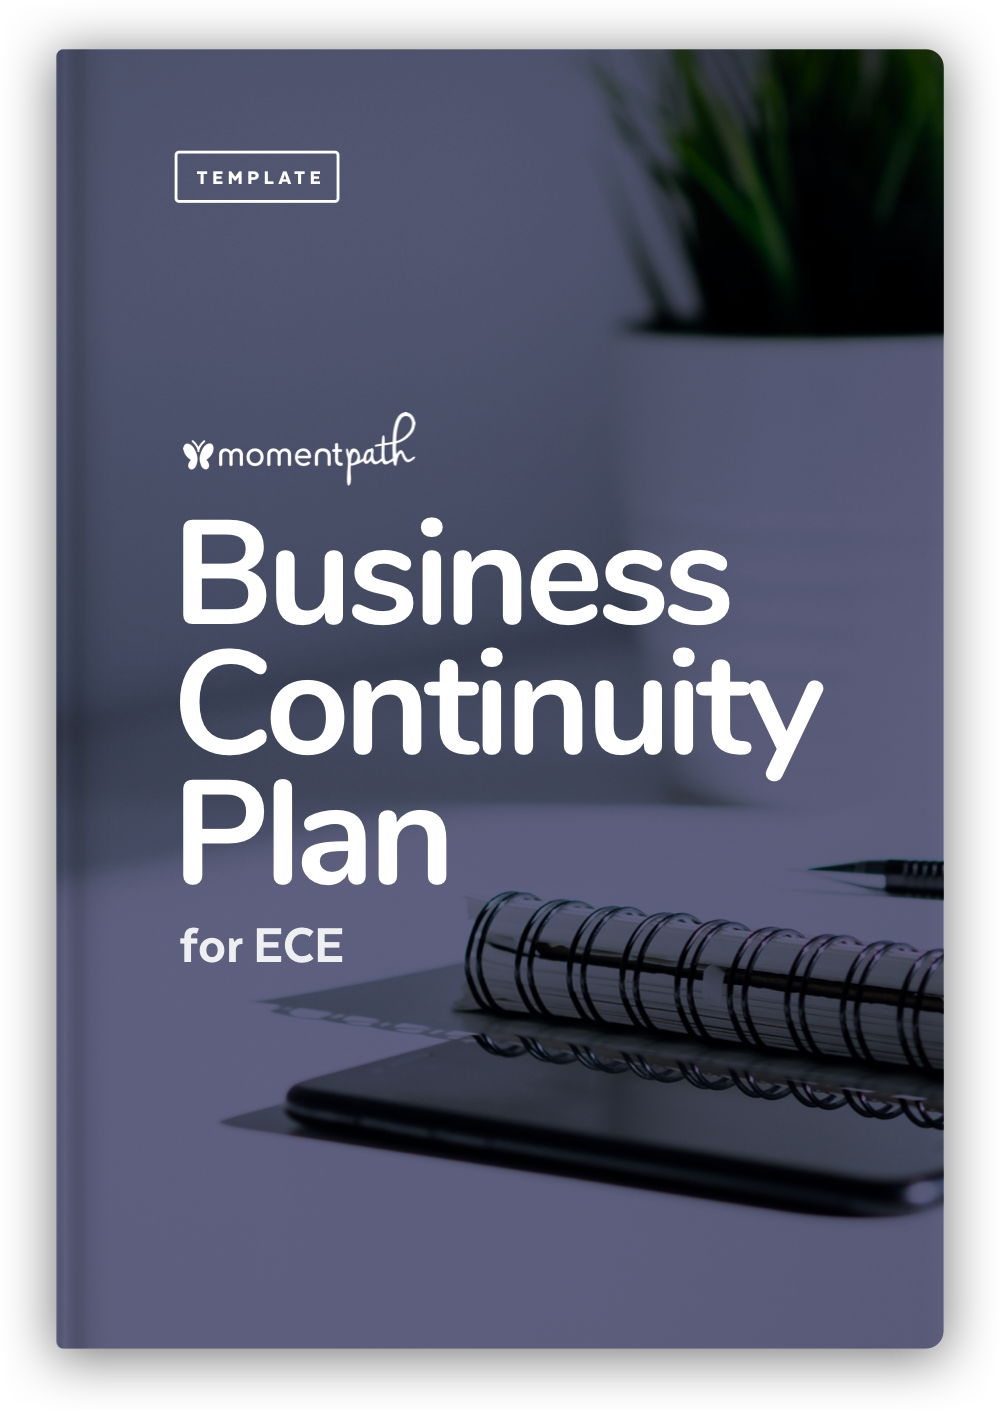 Business Continuity Plan for ECE